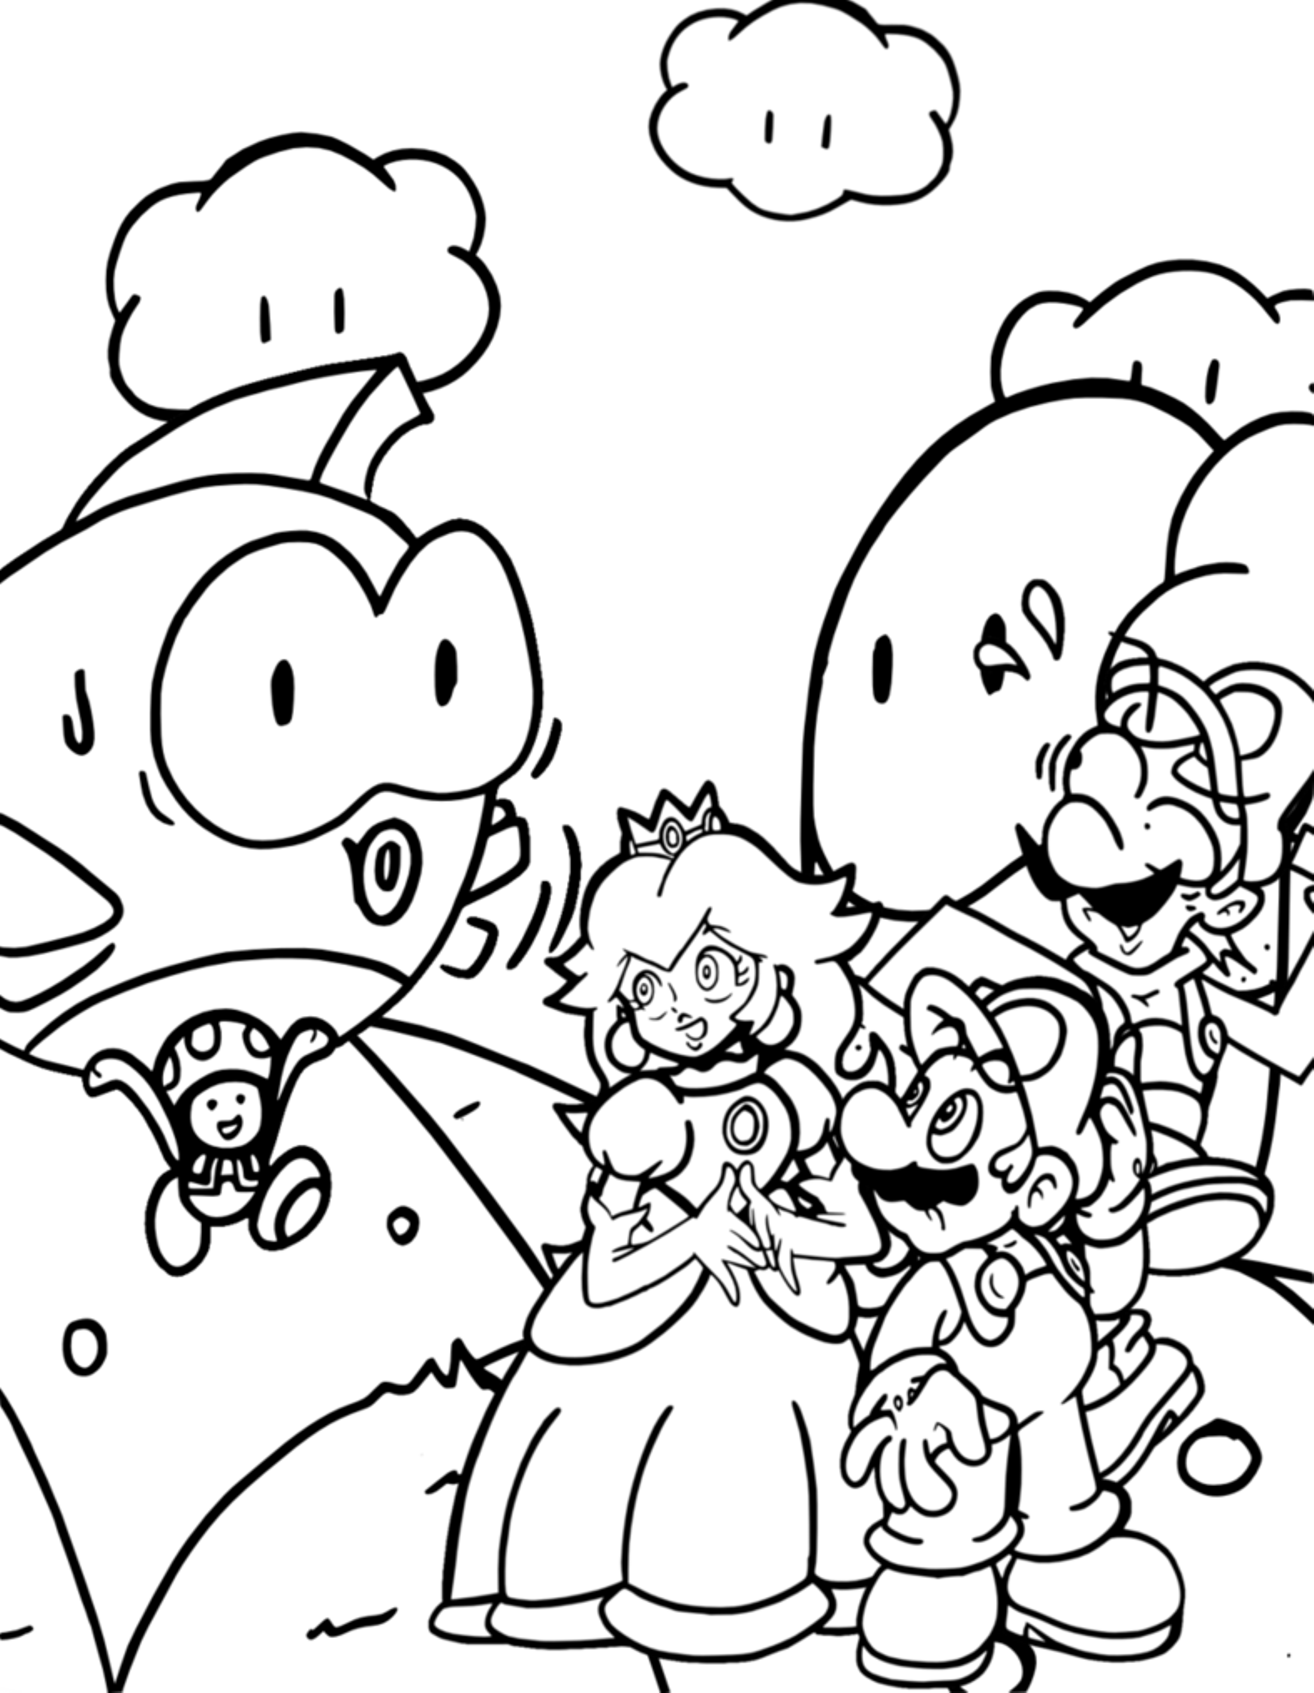 mario characters coloring pages - photo#4